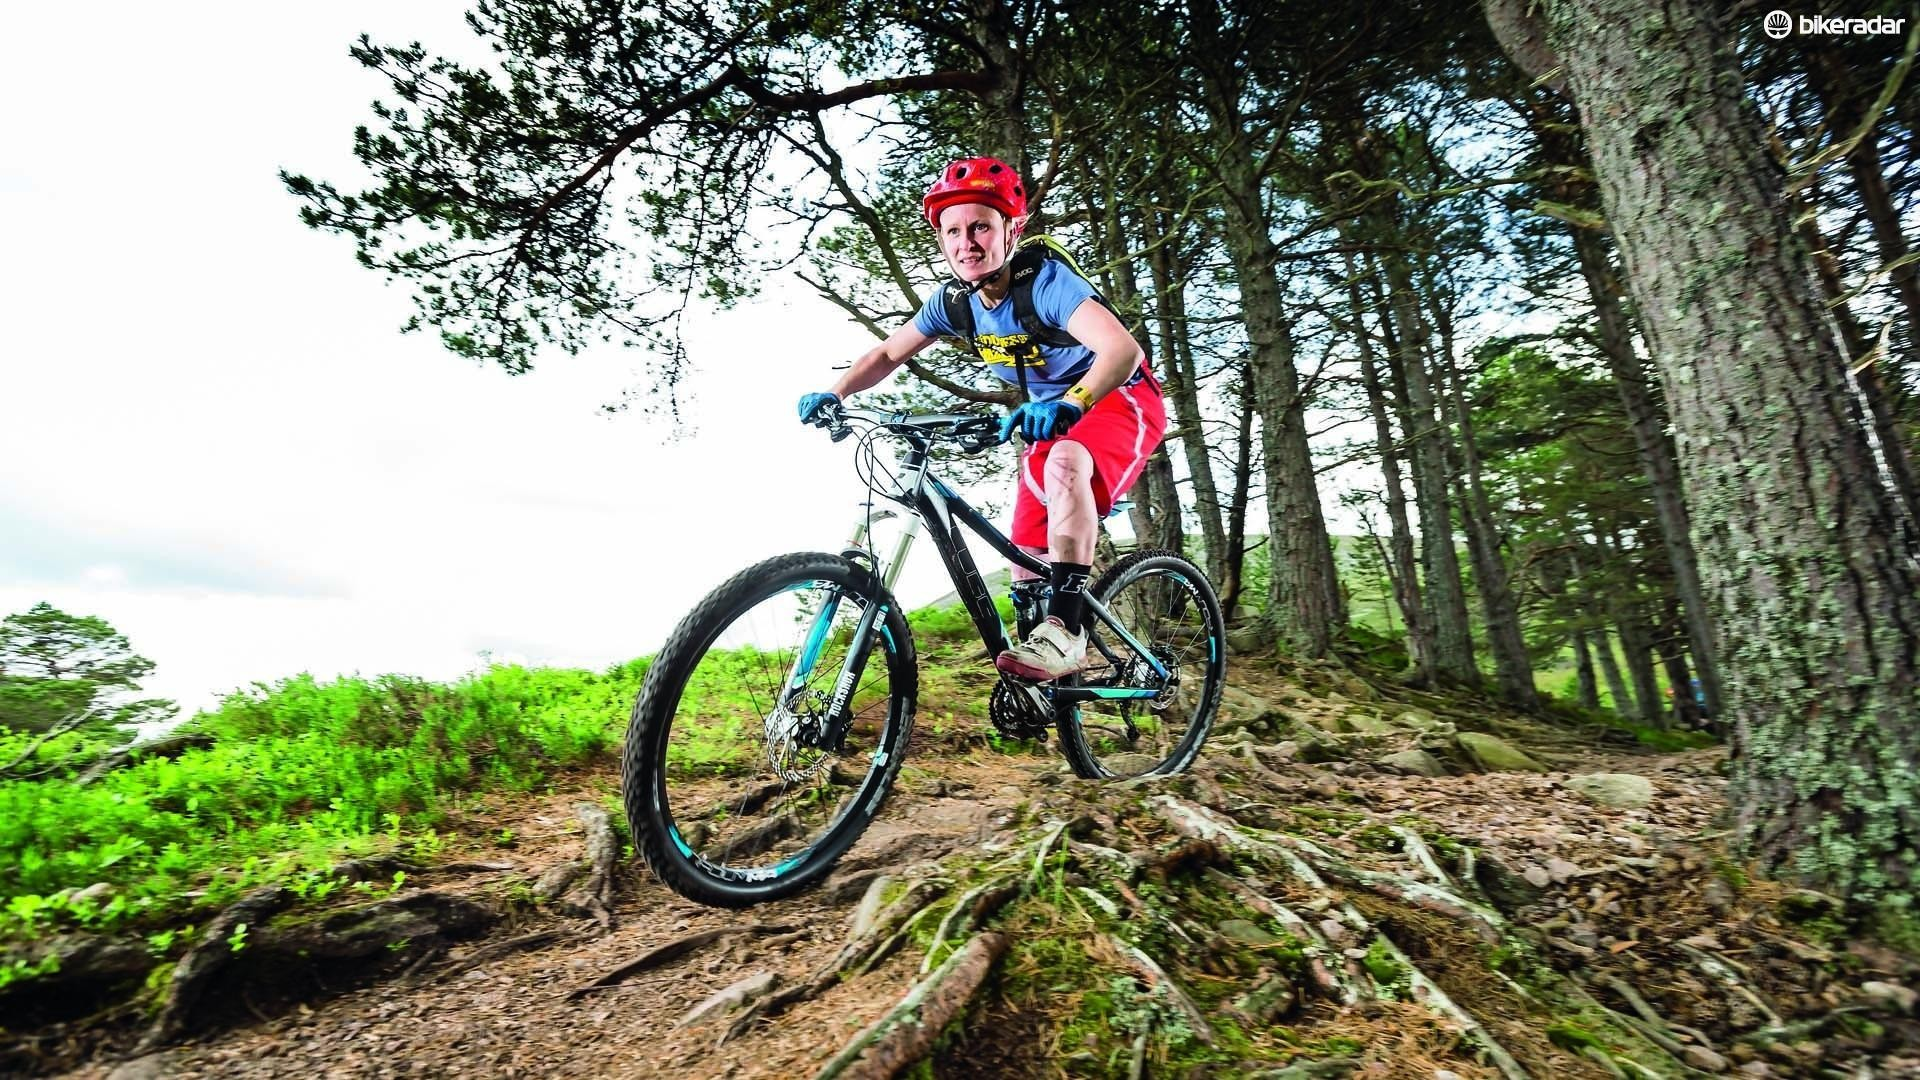 Mountain bikes are built to roll over truly bumpy terrain, but can be heavy and slow elsewhere